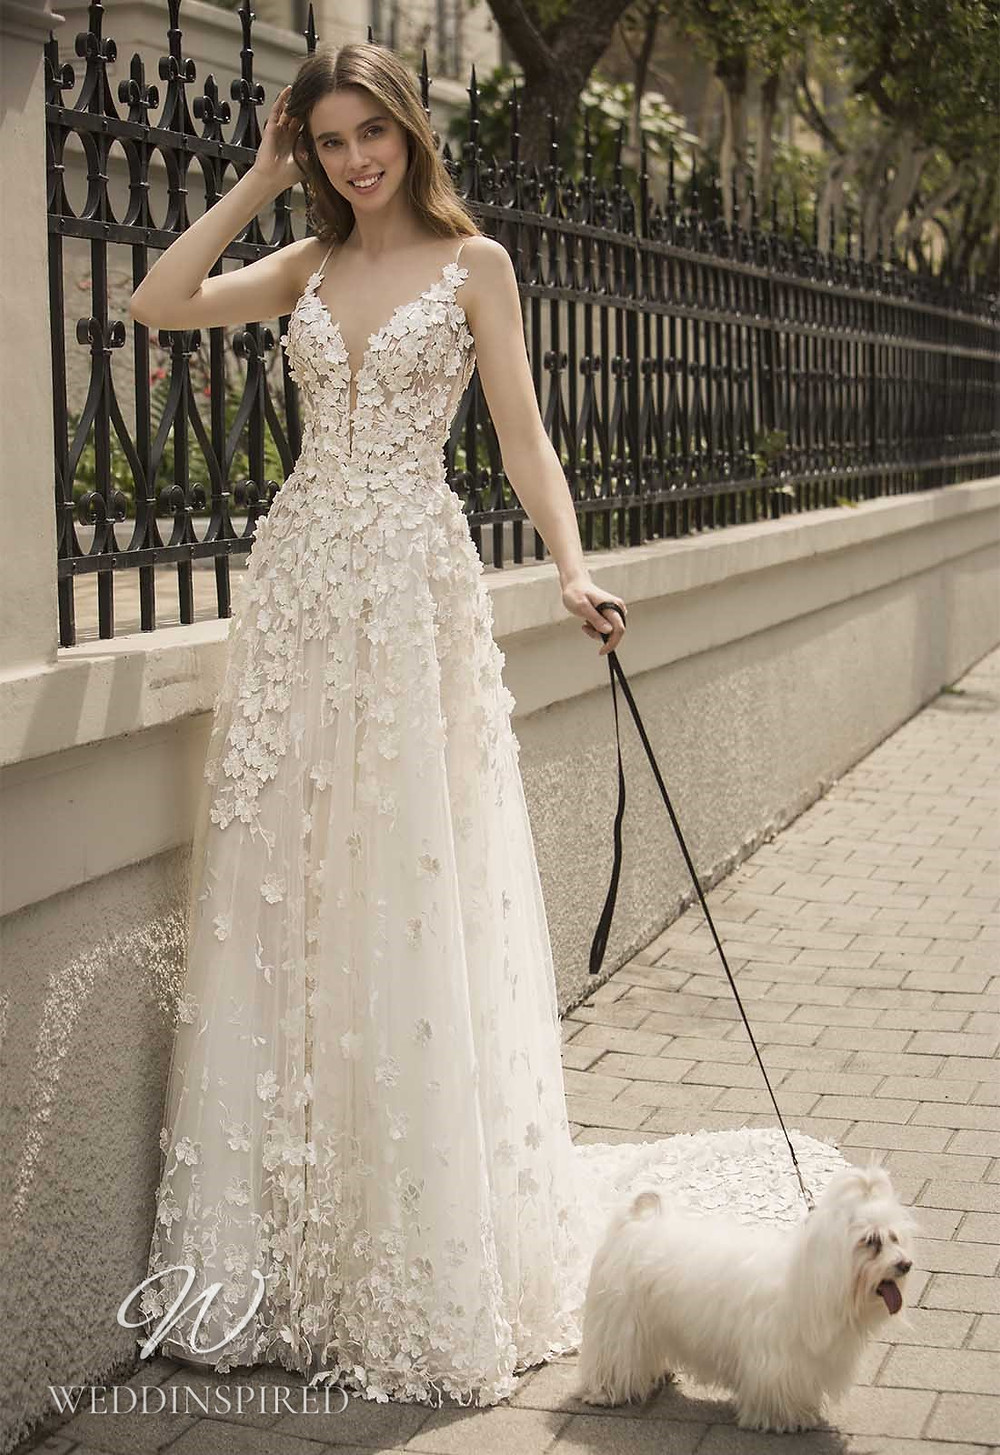 A Pnina Tornai 2021 floral lace and tulle A-line wedding dress